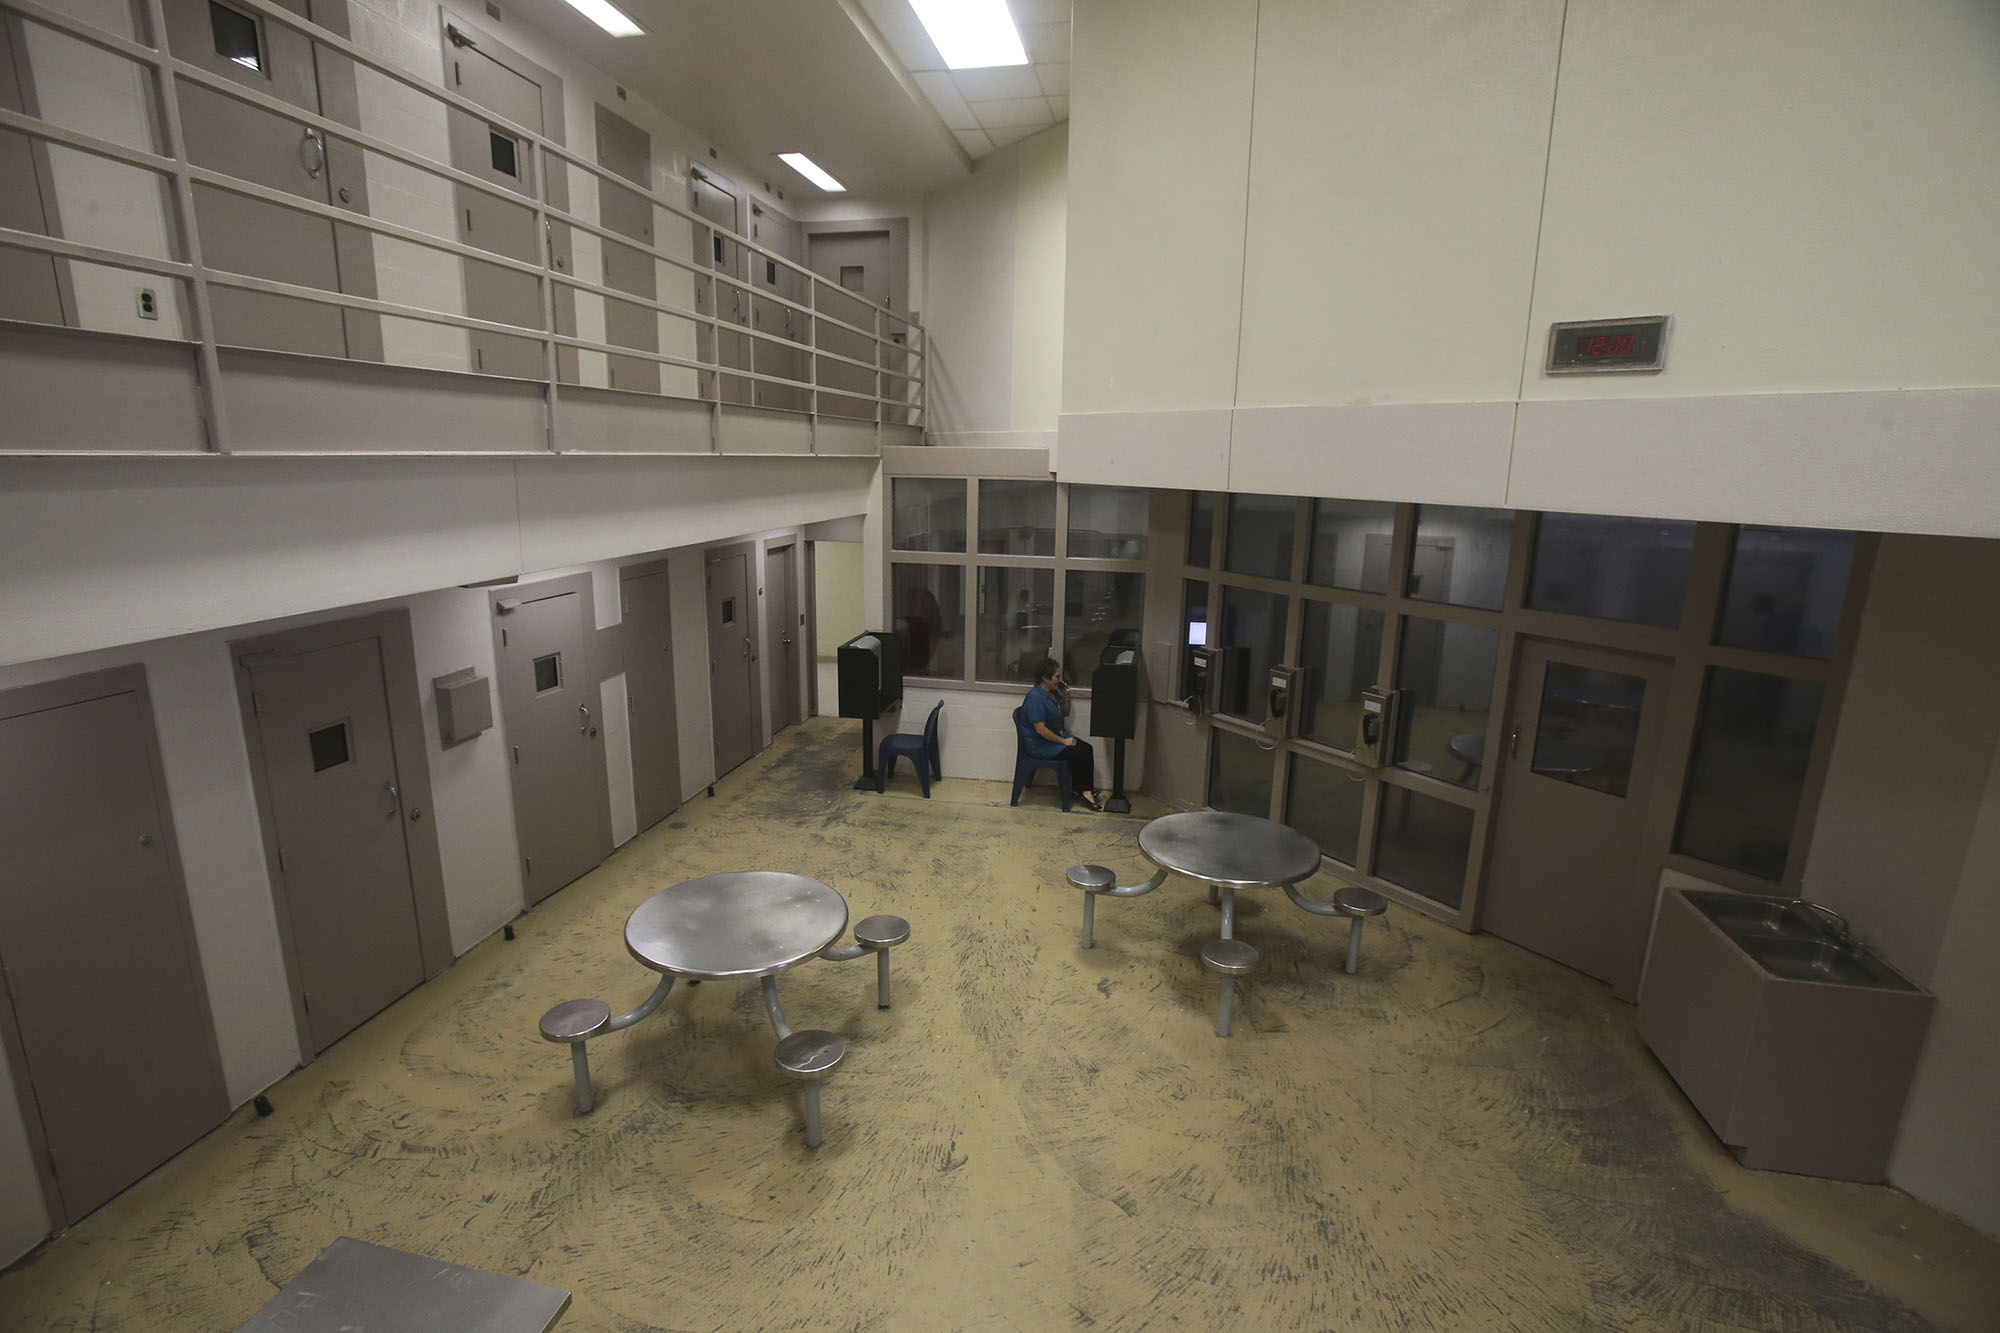 41 Year Old Bexar County Jail Inmate Dies After Guard